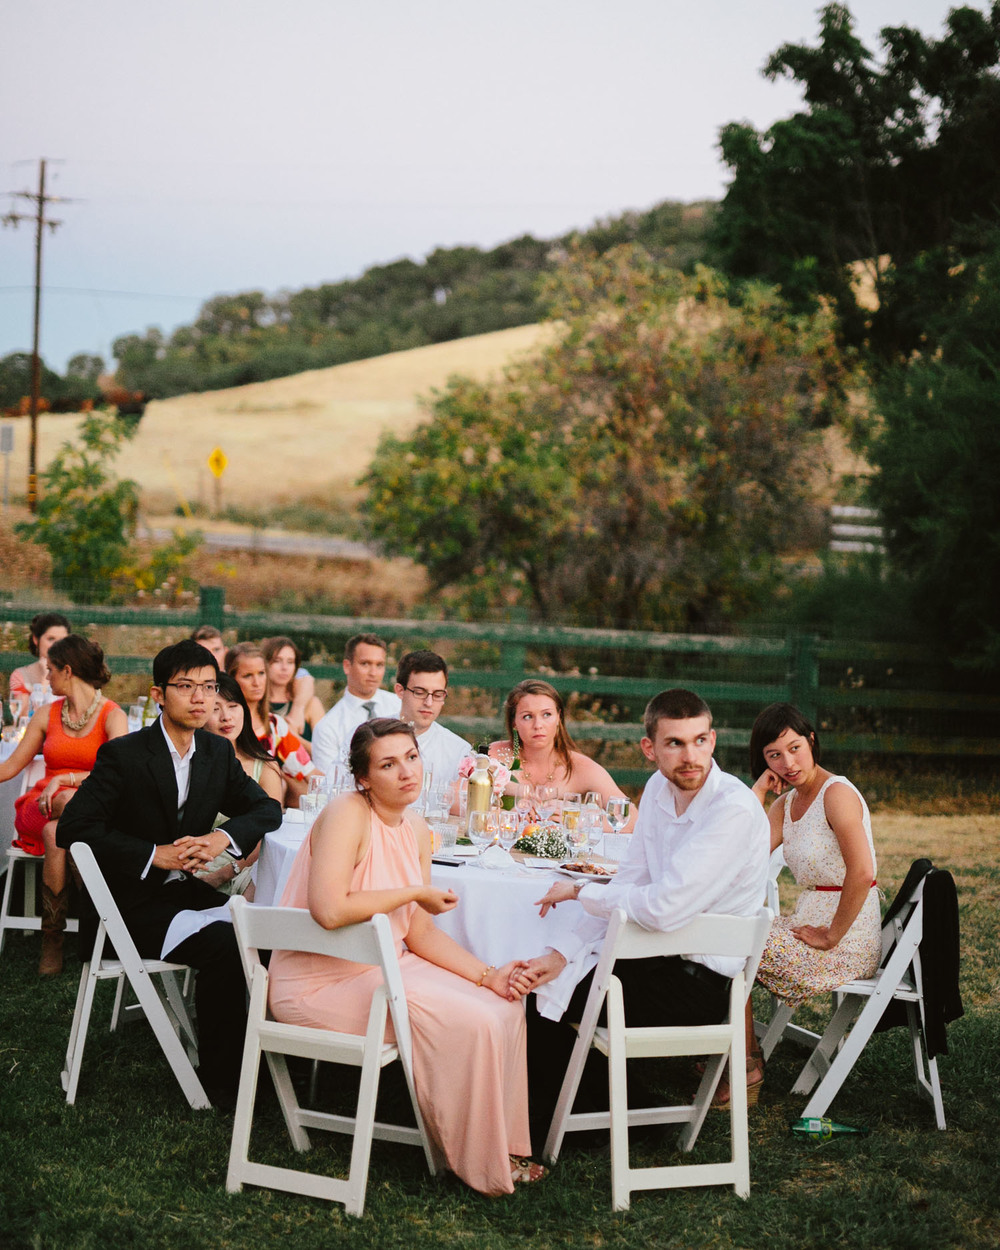 Napa Valley Vacaville Wedding Photographer - Hannah & Stephen - The Gathering Season x weareleoandkat 091.jpg